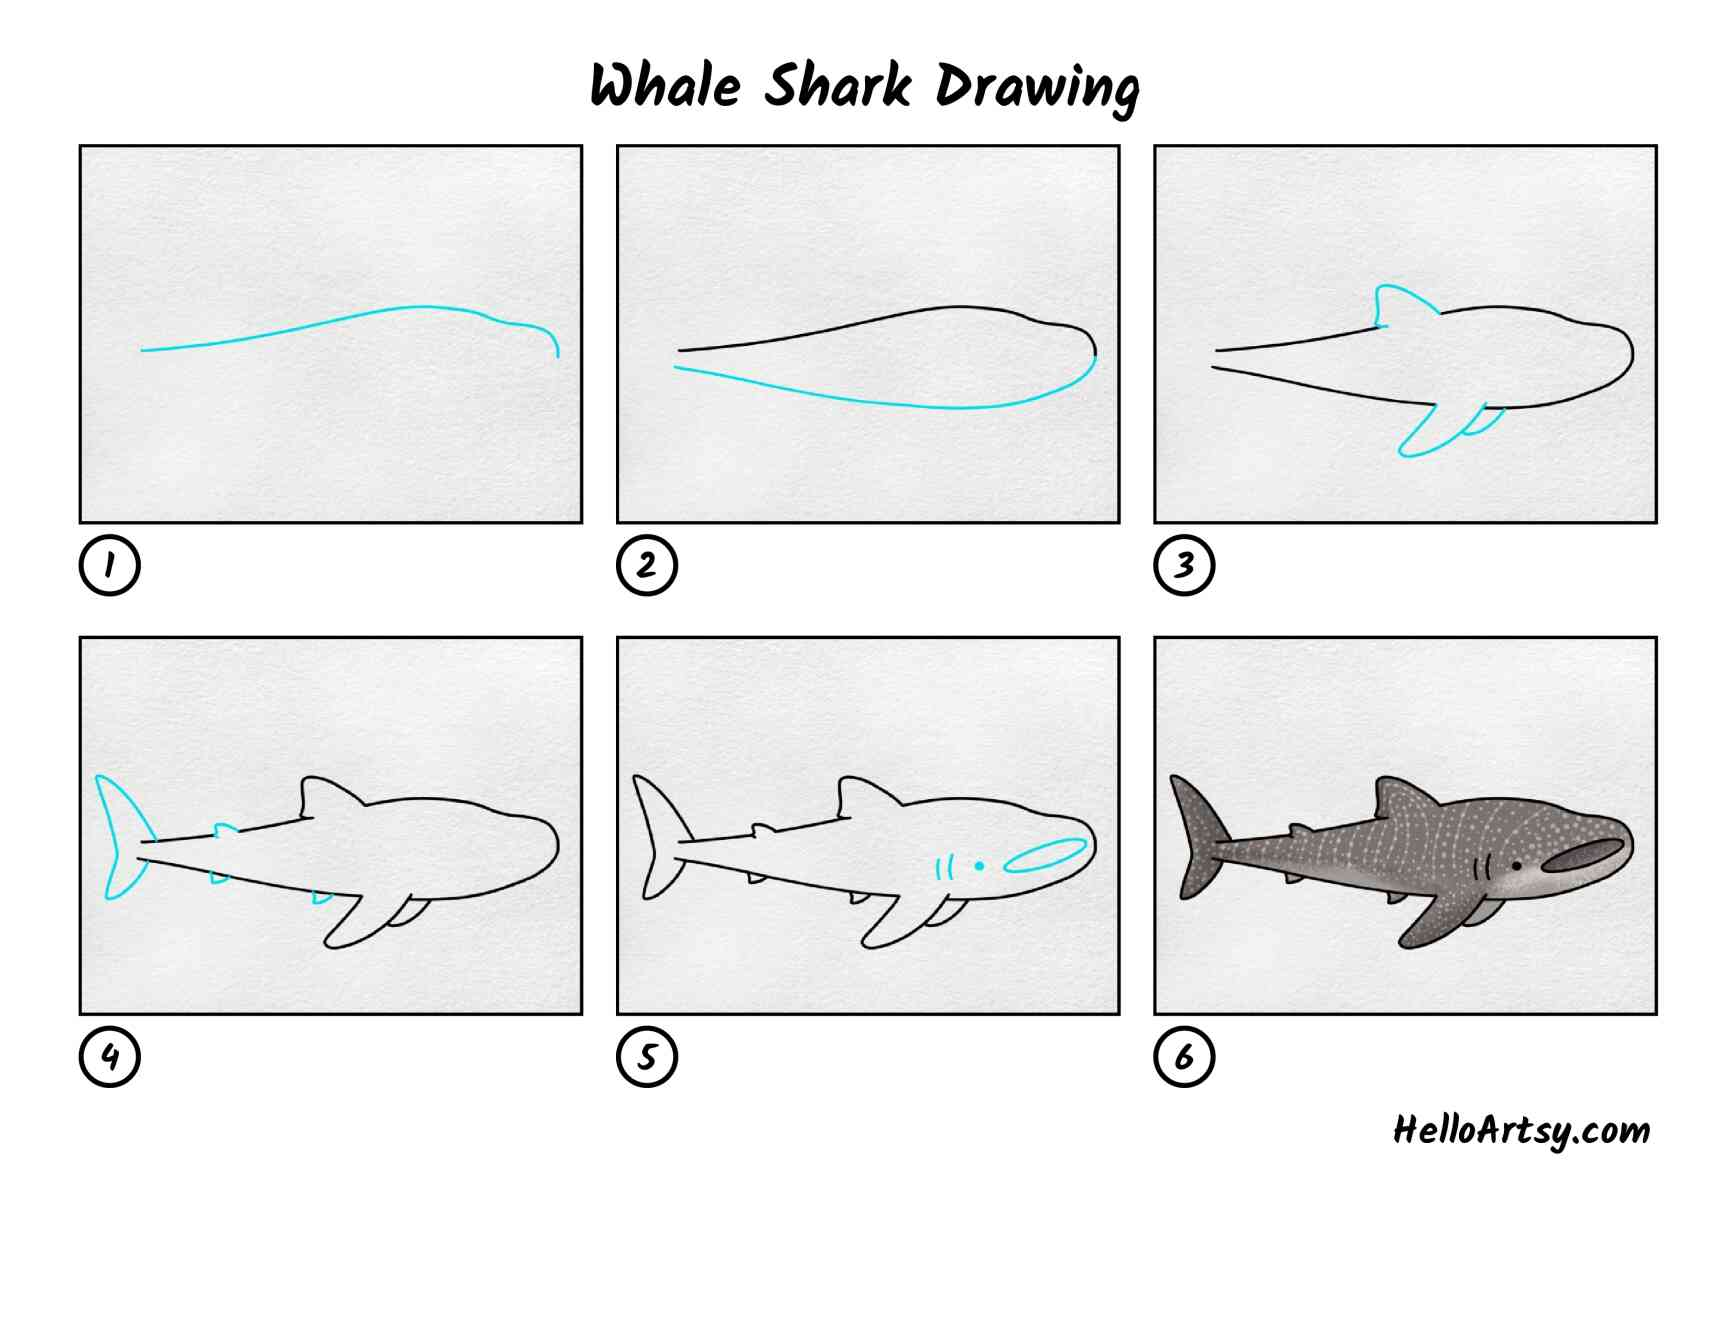 Whale Shark Drawing: All Steps